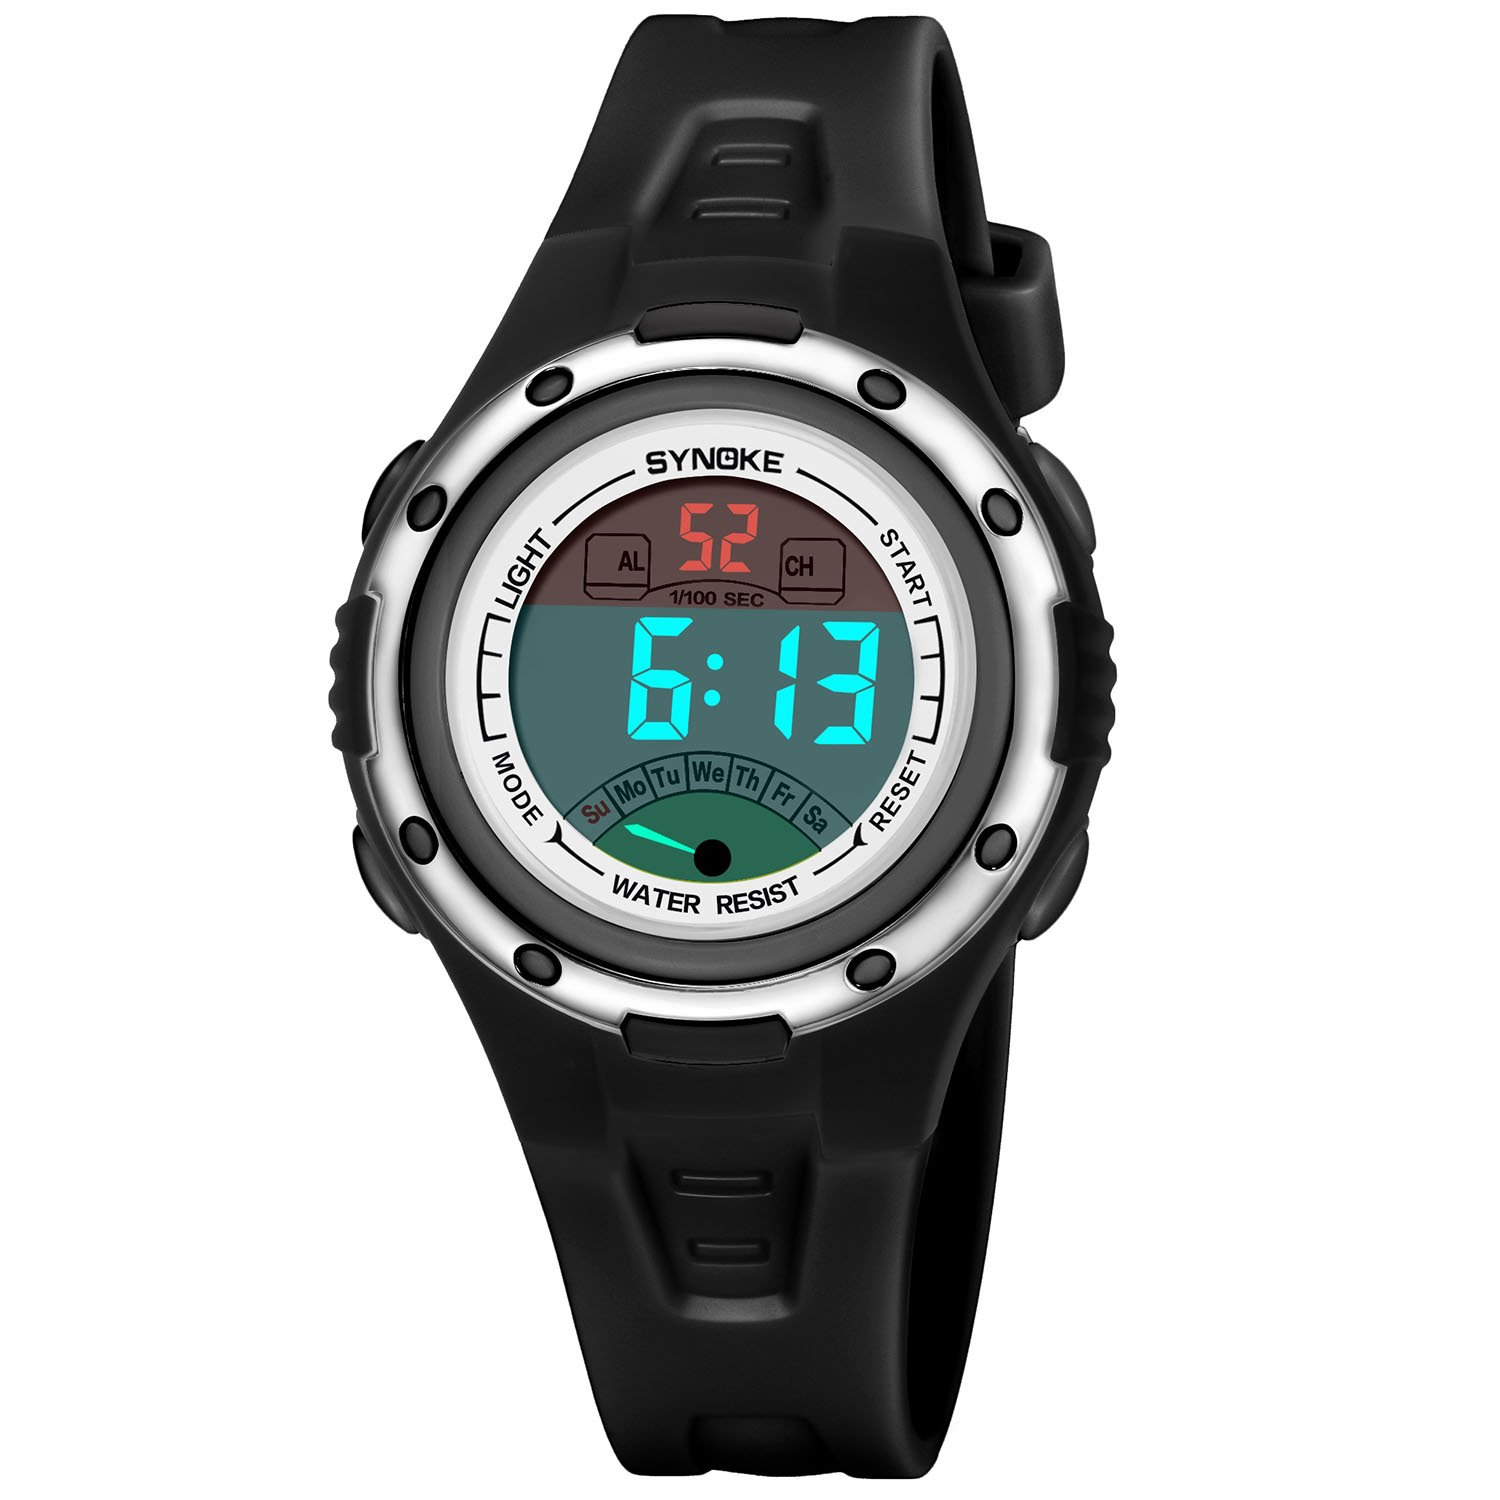 Kids Digital watch Boys Girls Sports Waterproof Watches with Alarms Reminder Stopwatch Outdoor Child Wristwatch for Youth Childrens